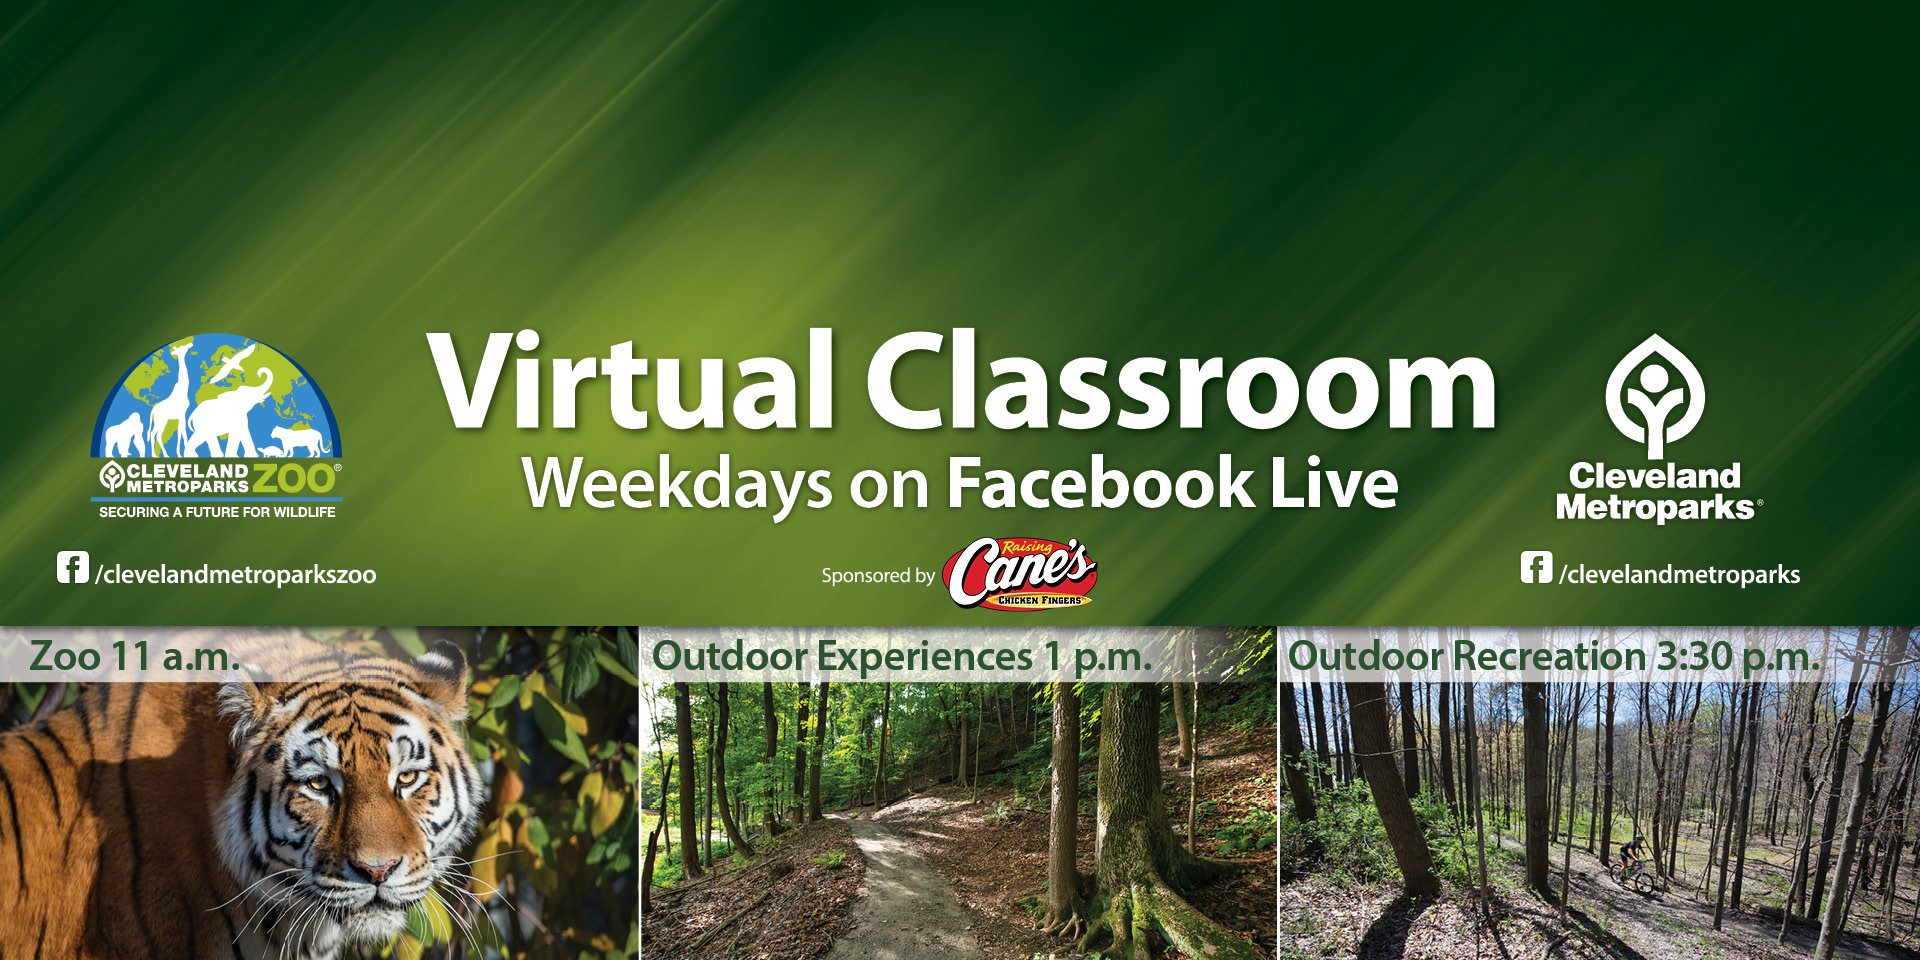 Cleveland Metroparks Expands Free Virtual Classroom